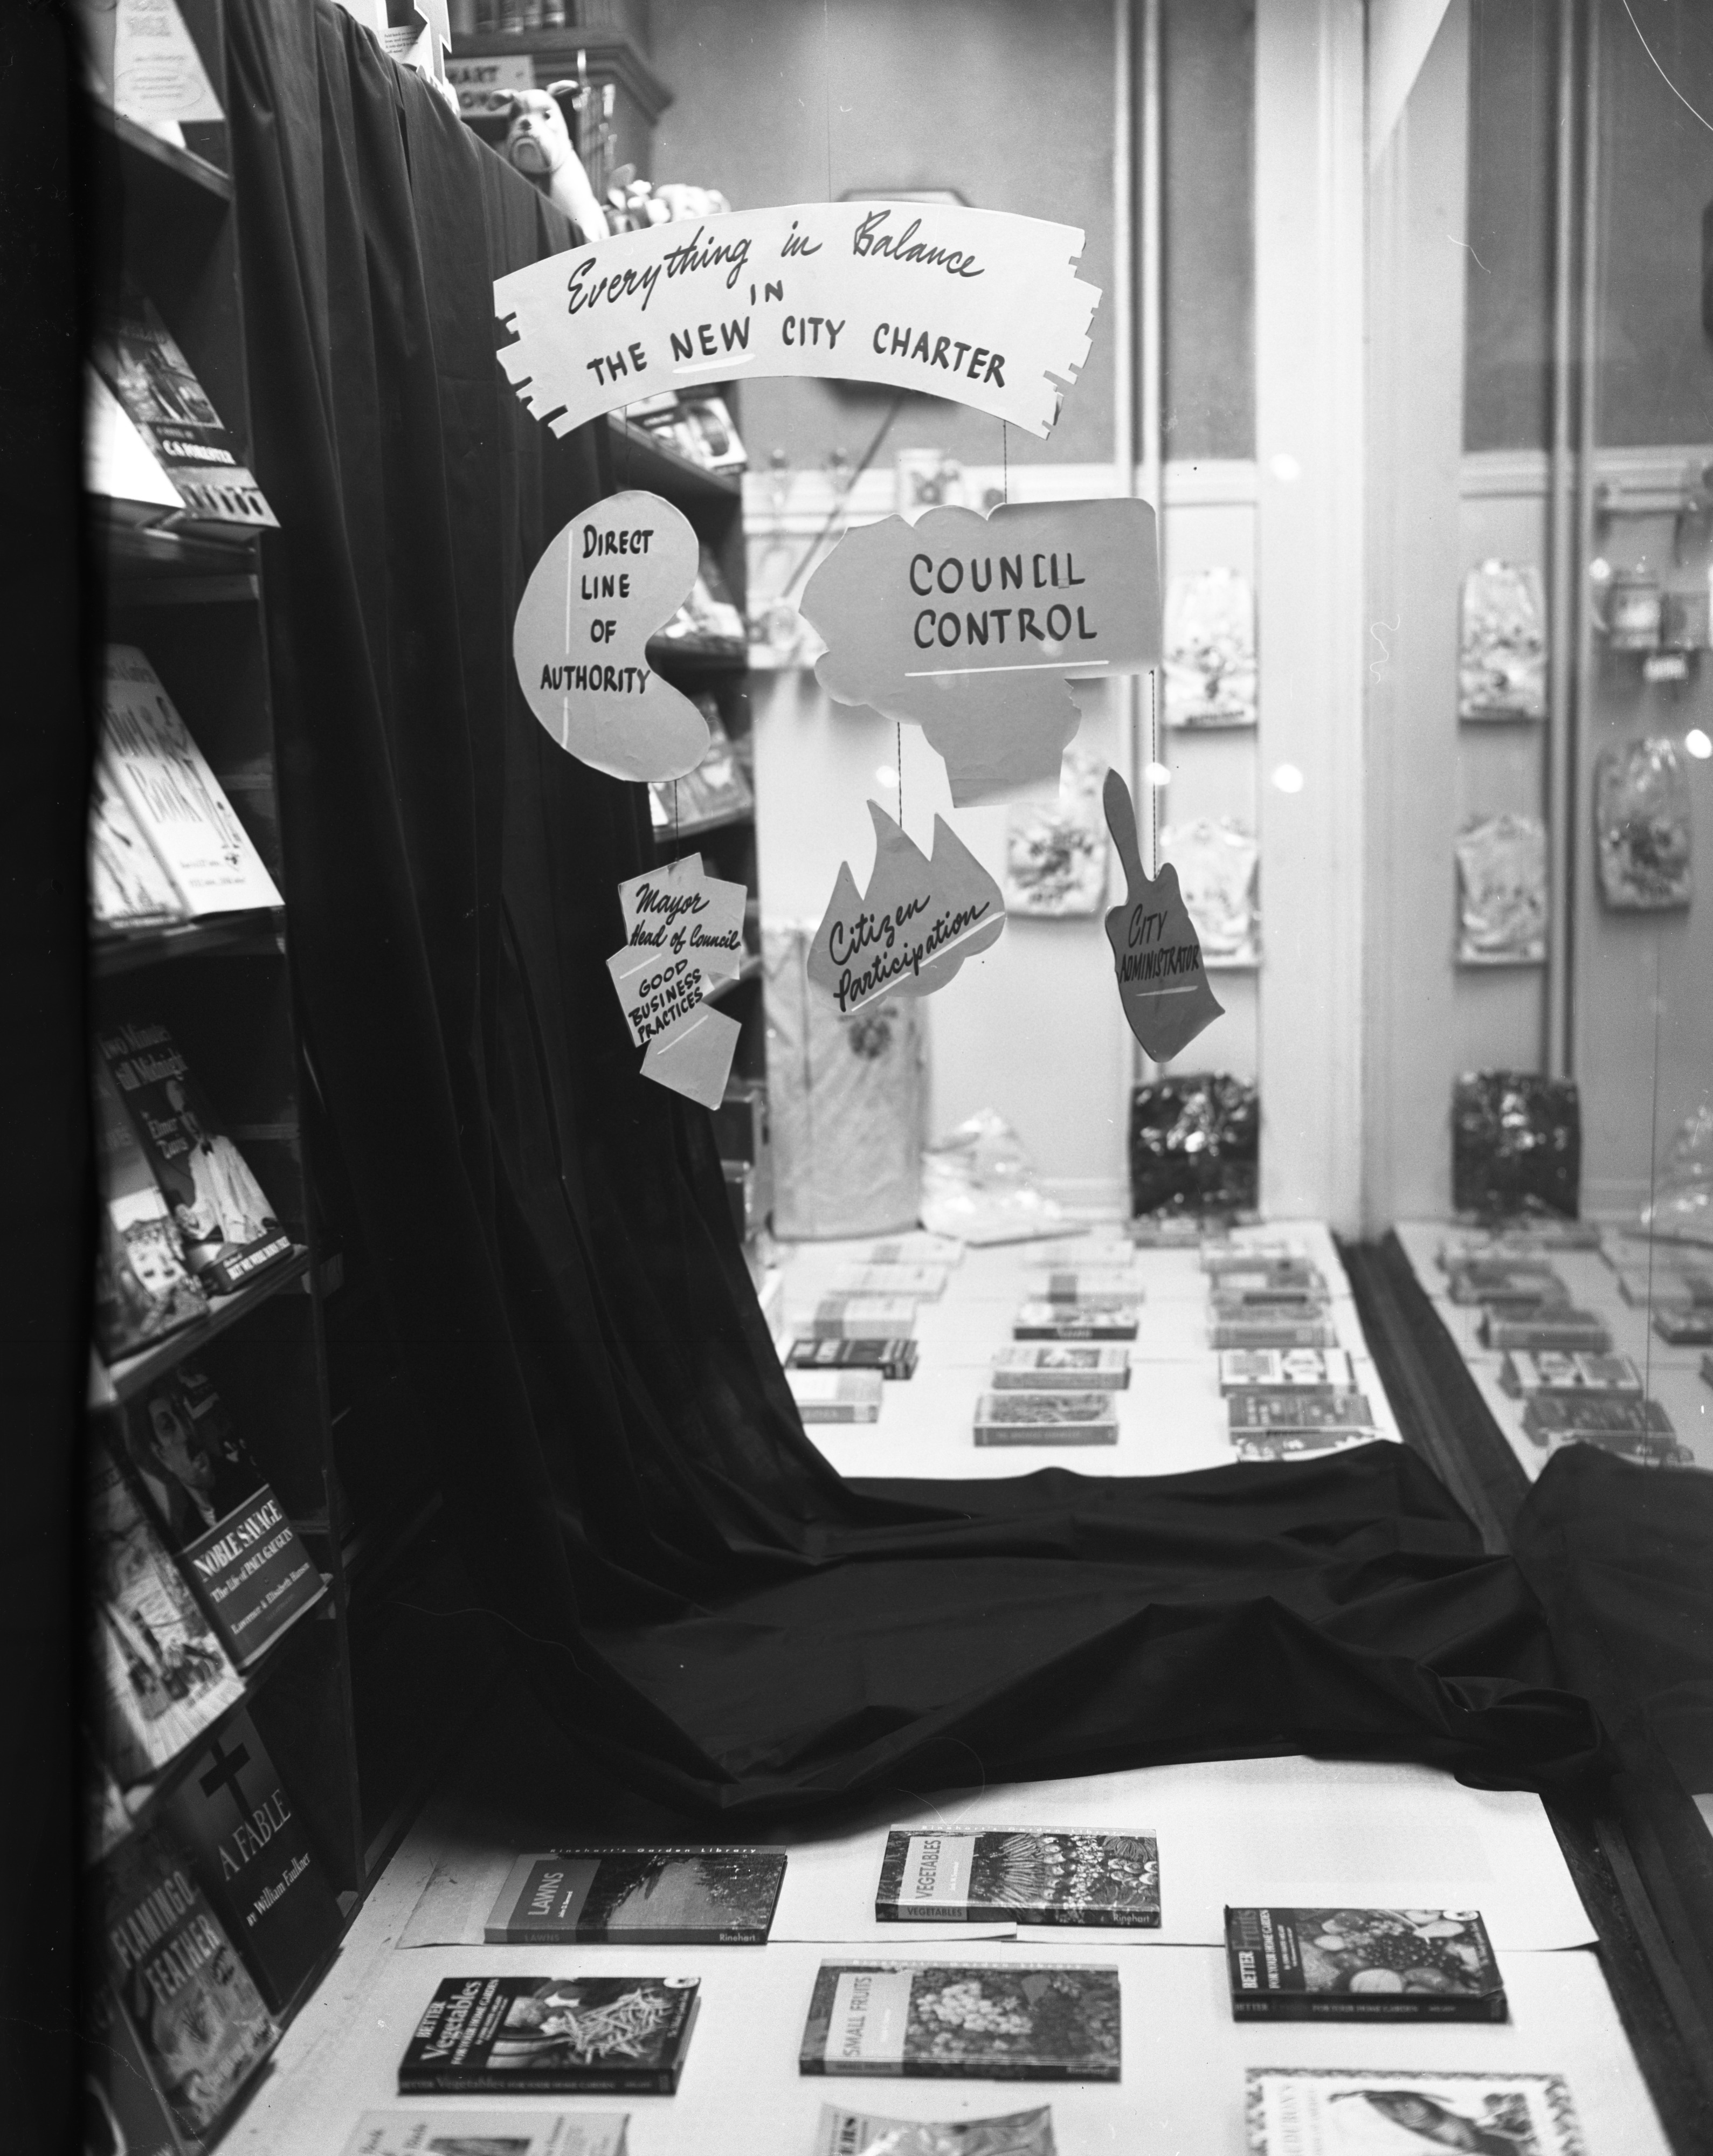 Ann Arbor City Charter display at Wahr's Bookstore, March 1955 image